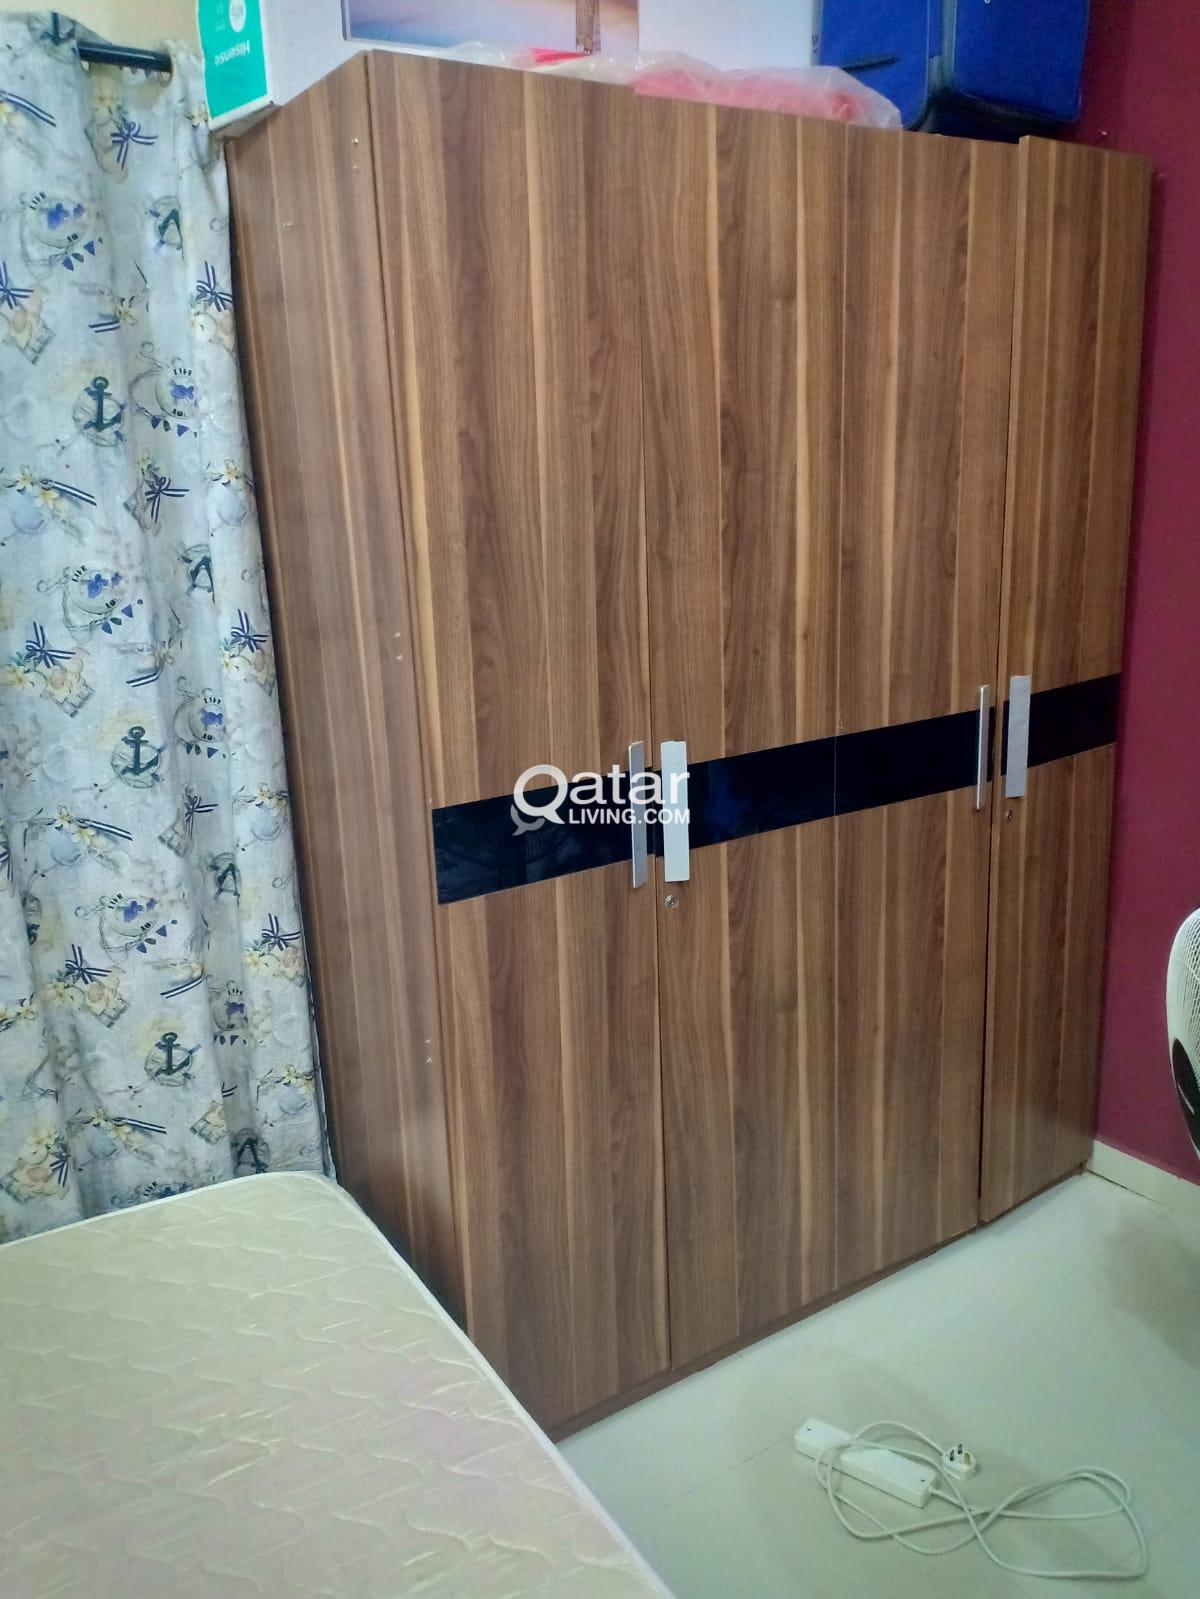 Bed 210 160.Bed Mattress And Wardrobe For Sale Qatar Living